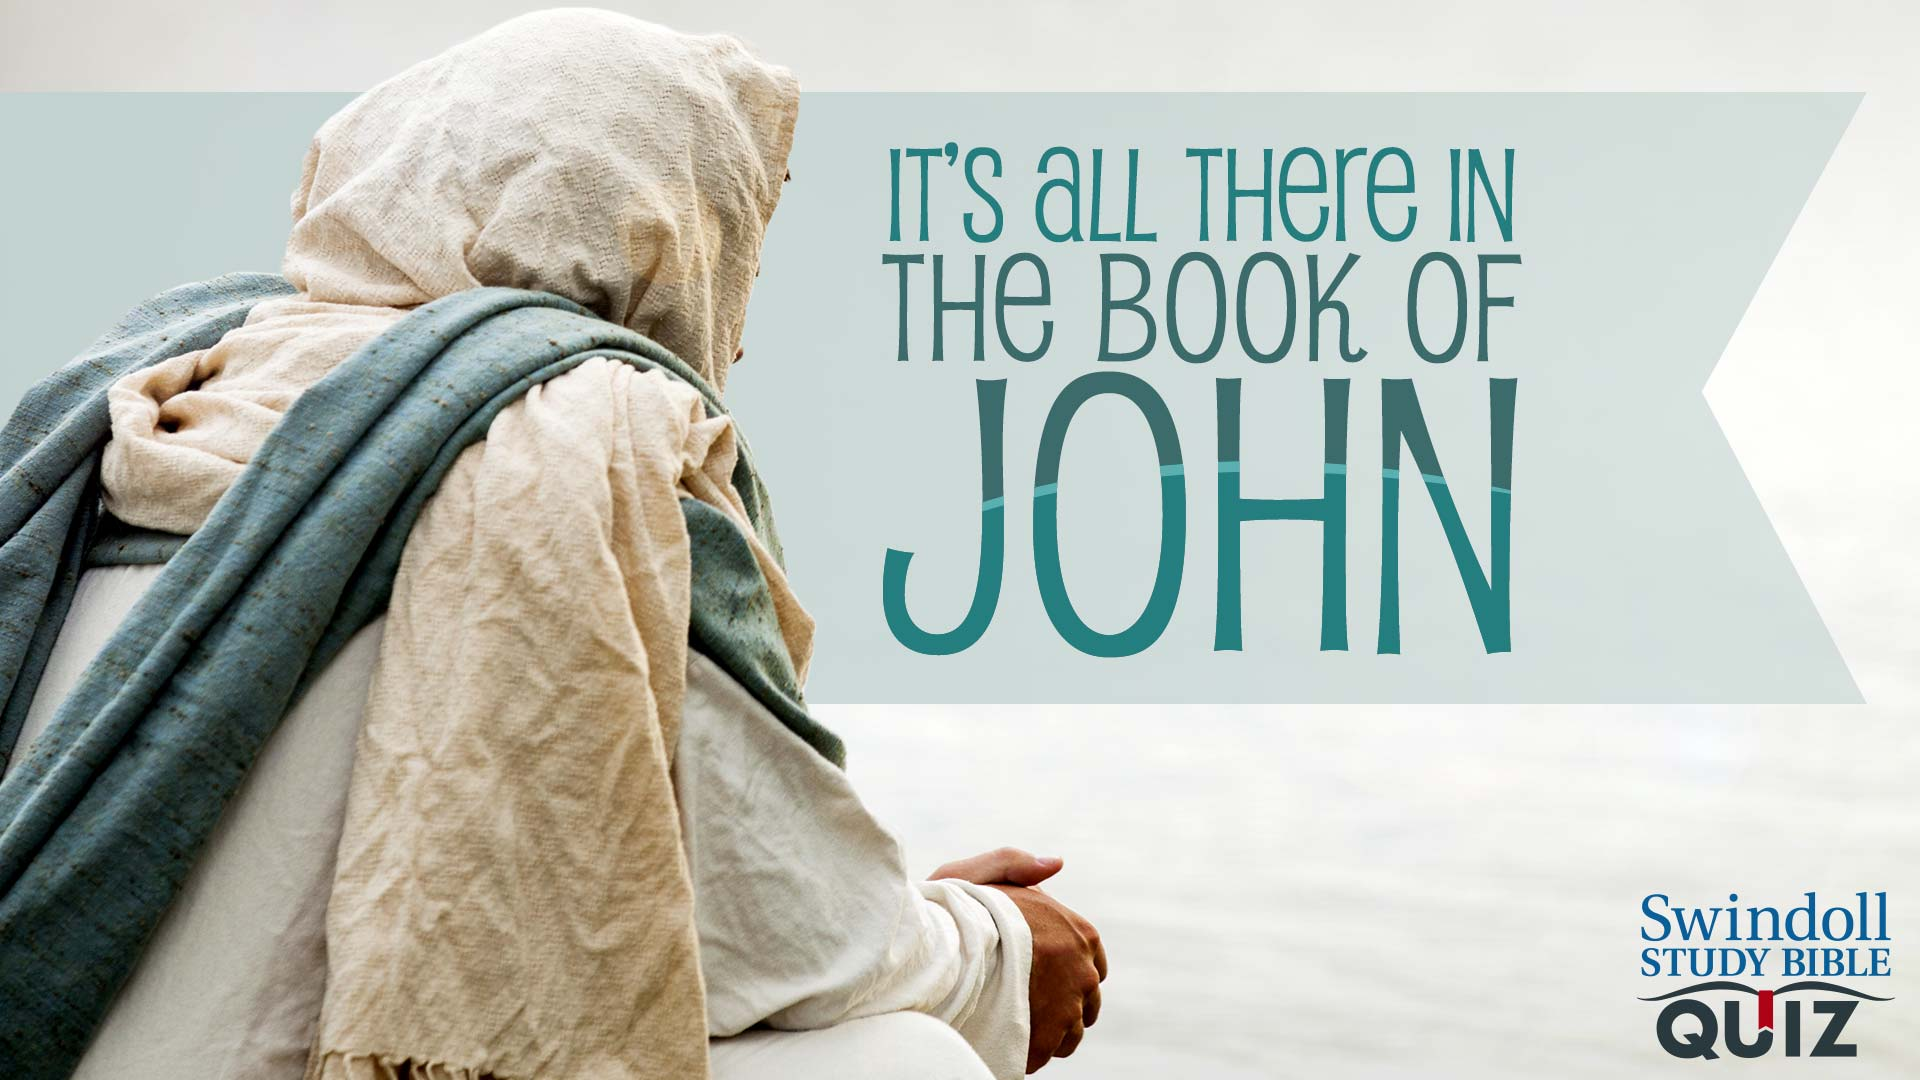 It's All There in the Book of John